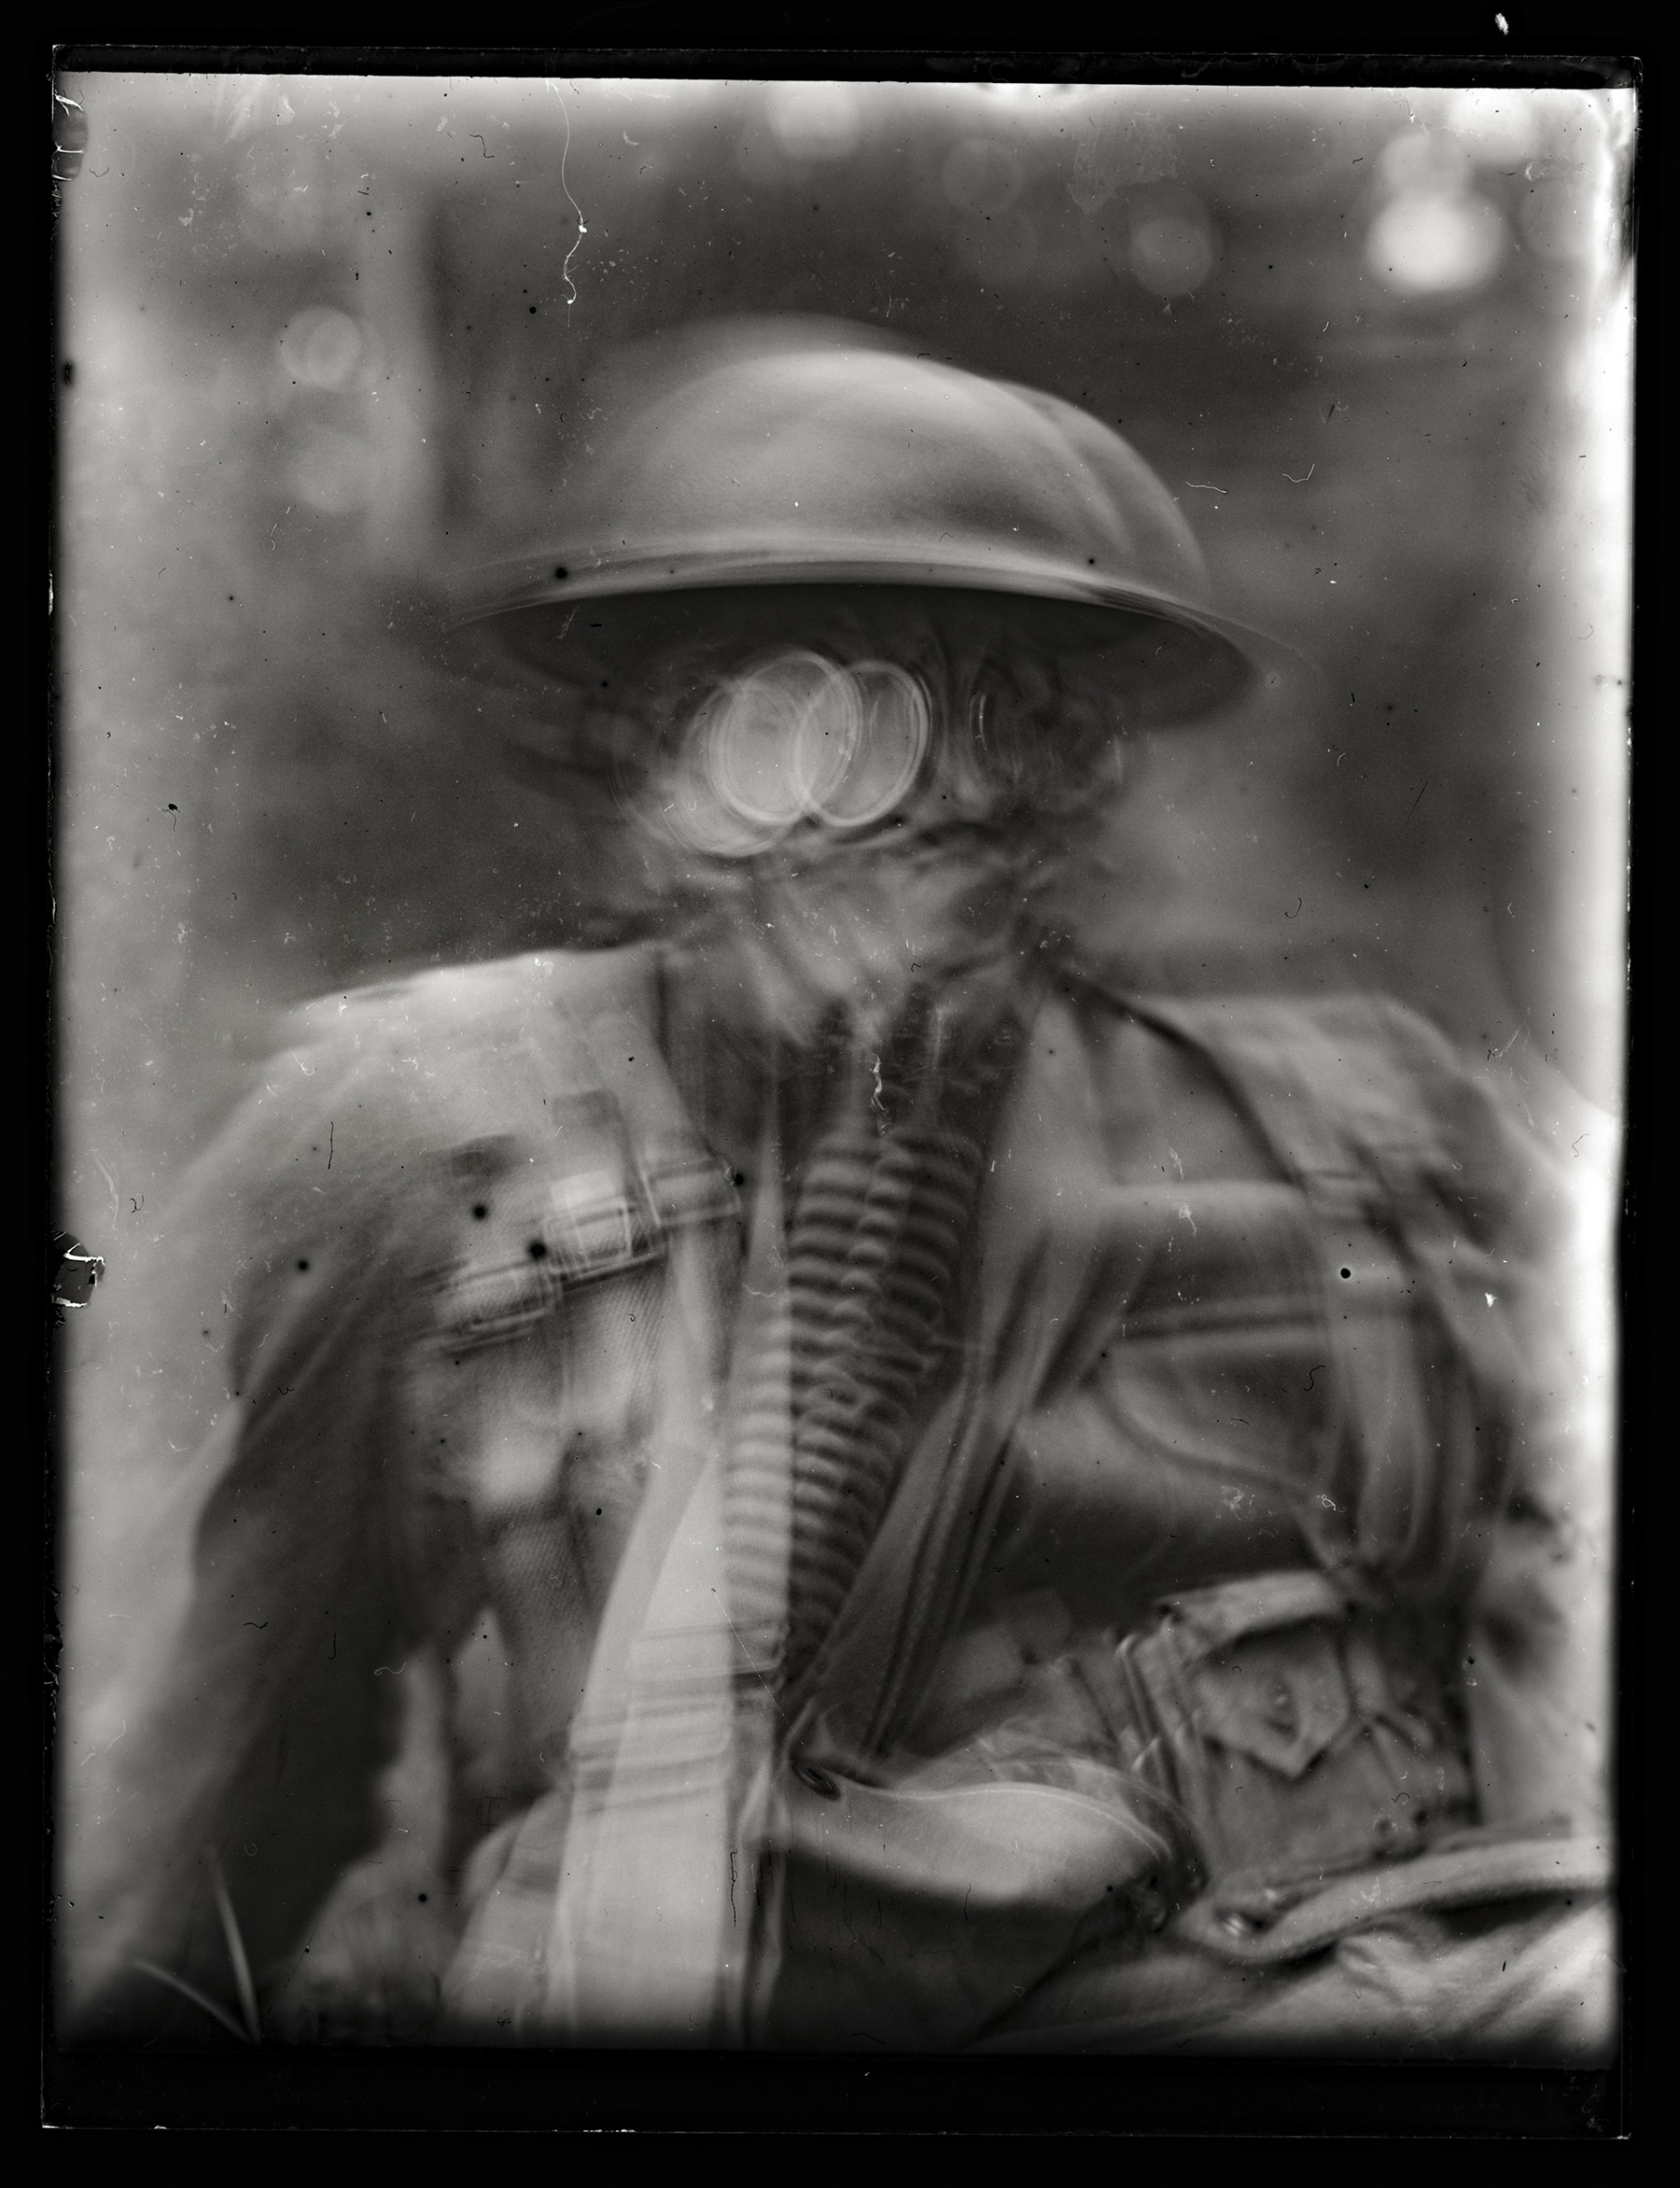 An intentionally blurry photo of a soldier.